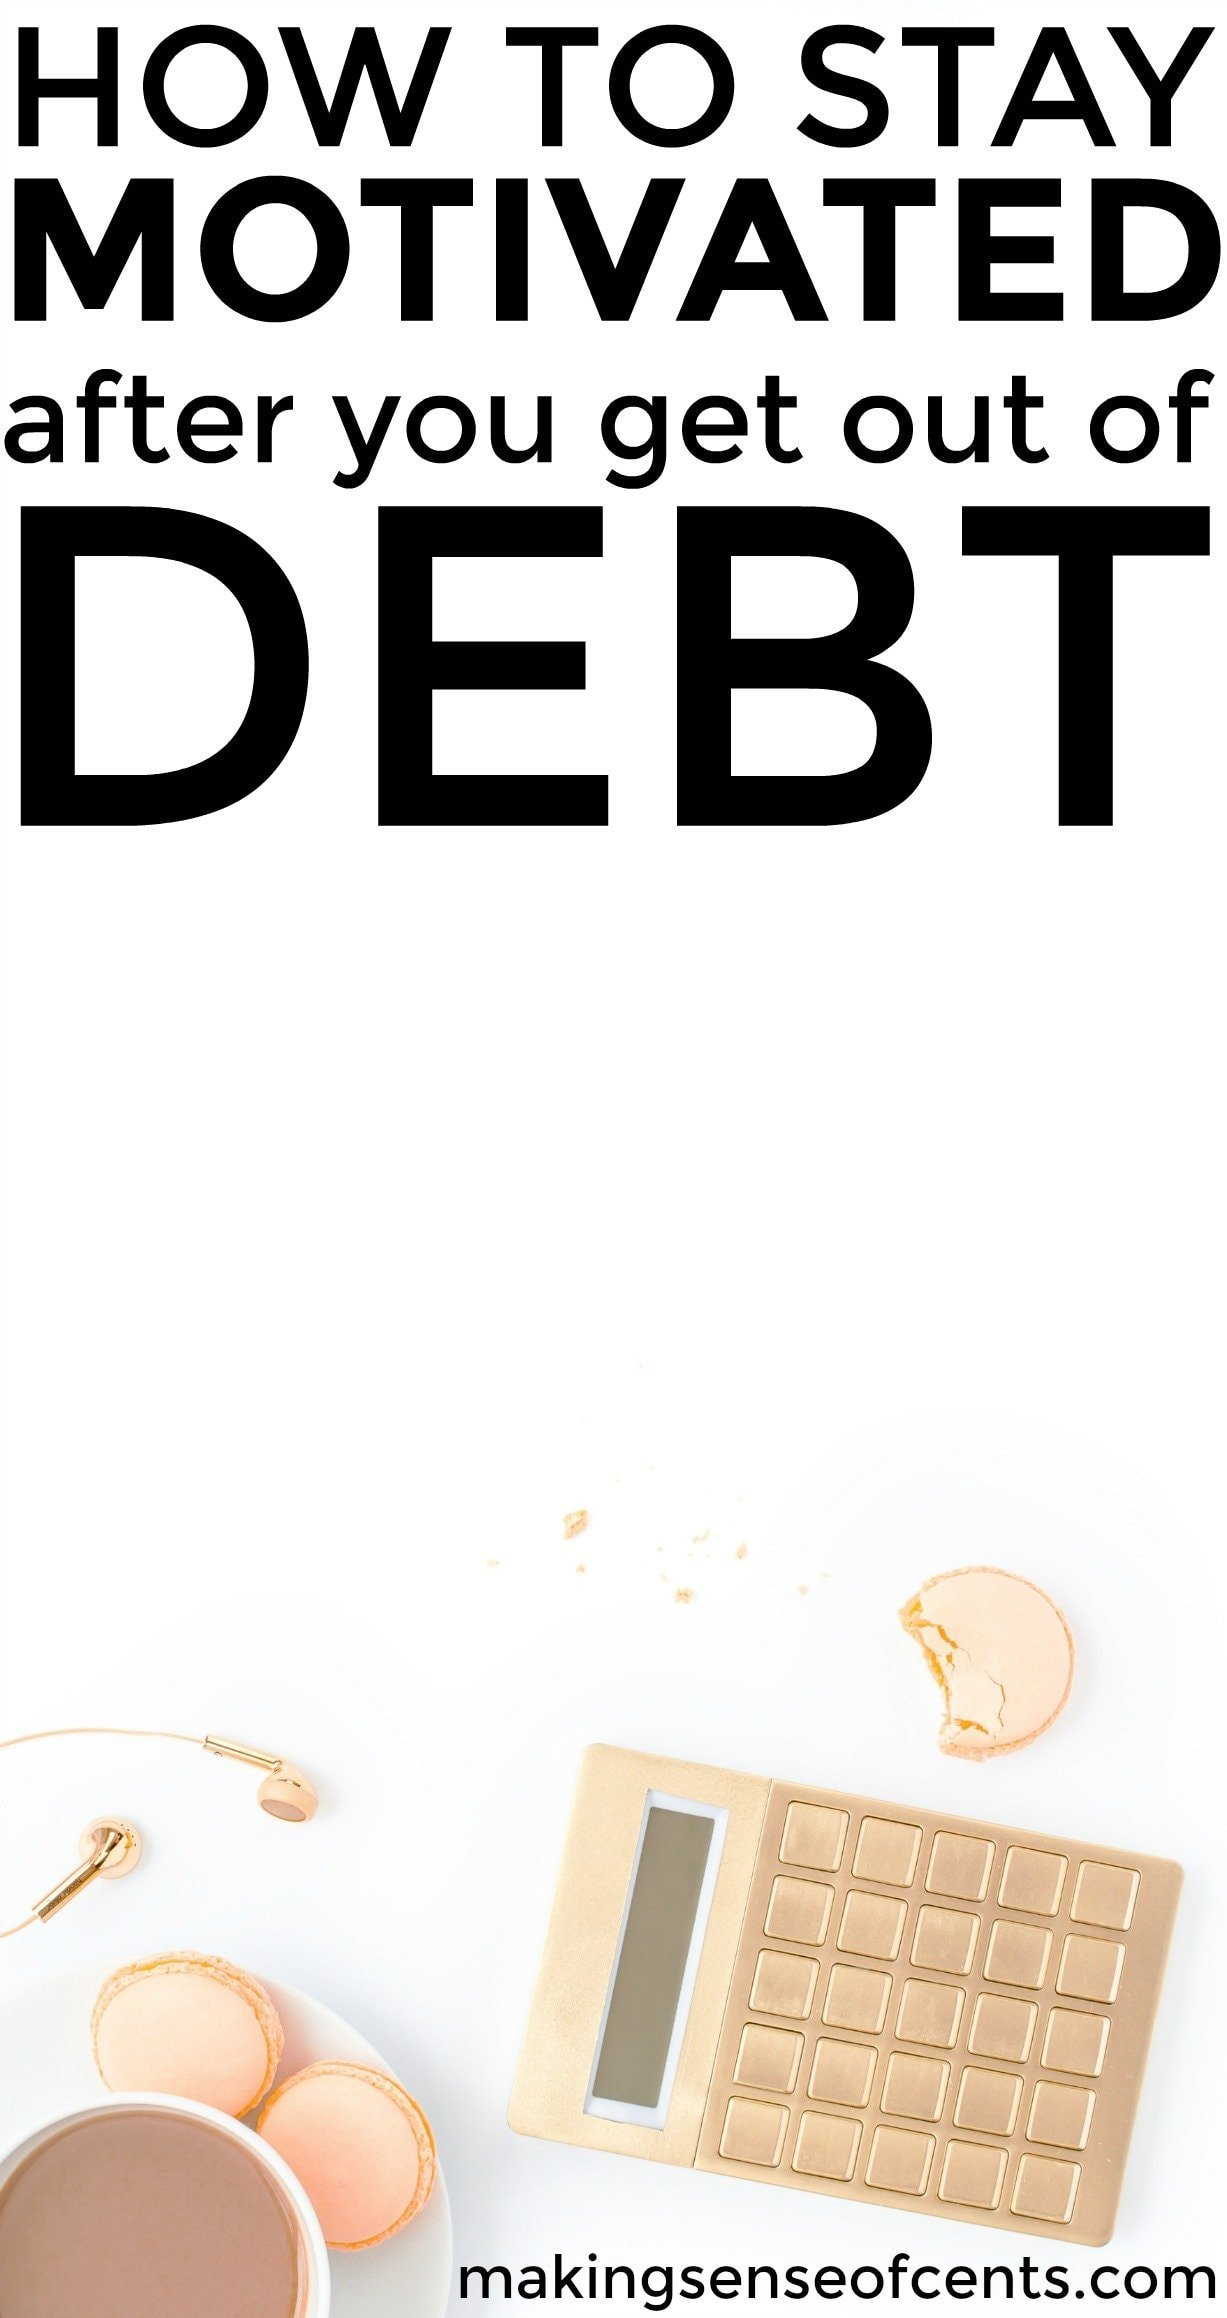 Find out how to stay motivated after you get out of debt. This is a great list!